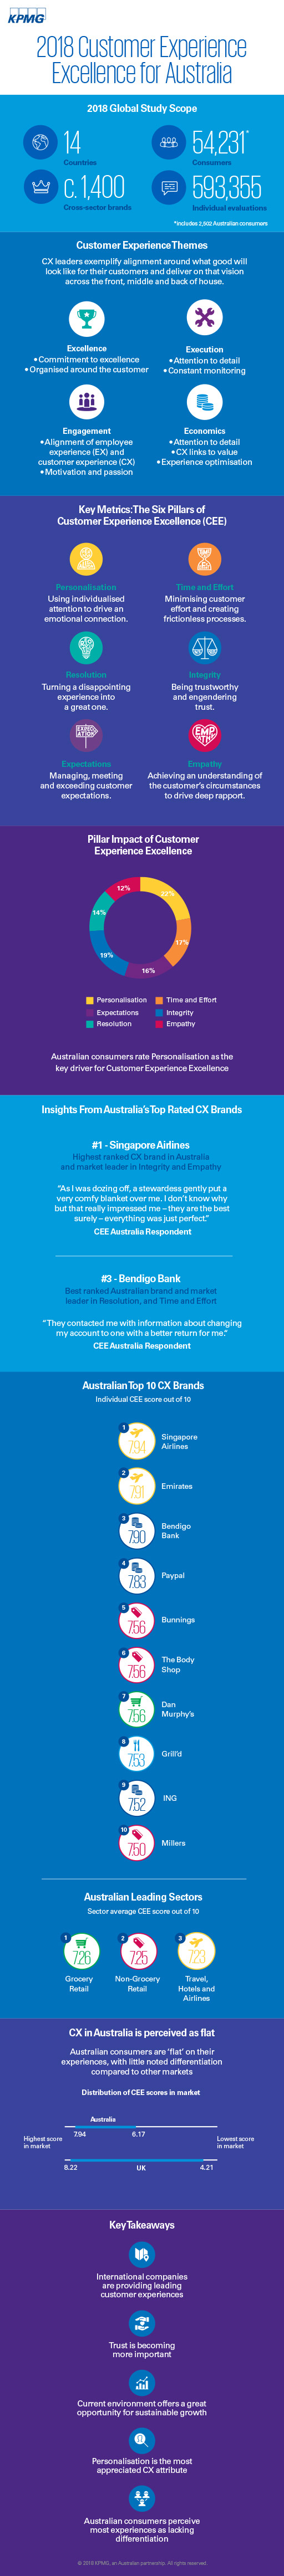 Customer Experience Excellence in Australia – 2018 infographic